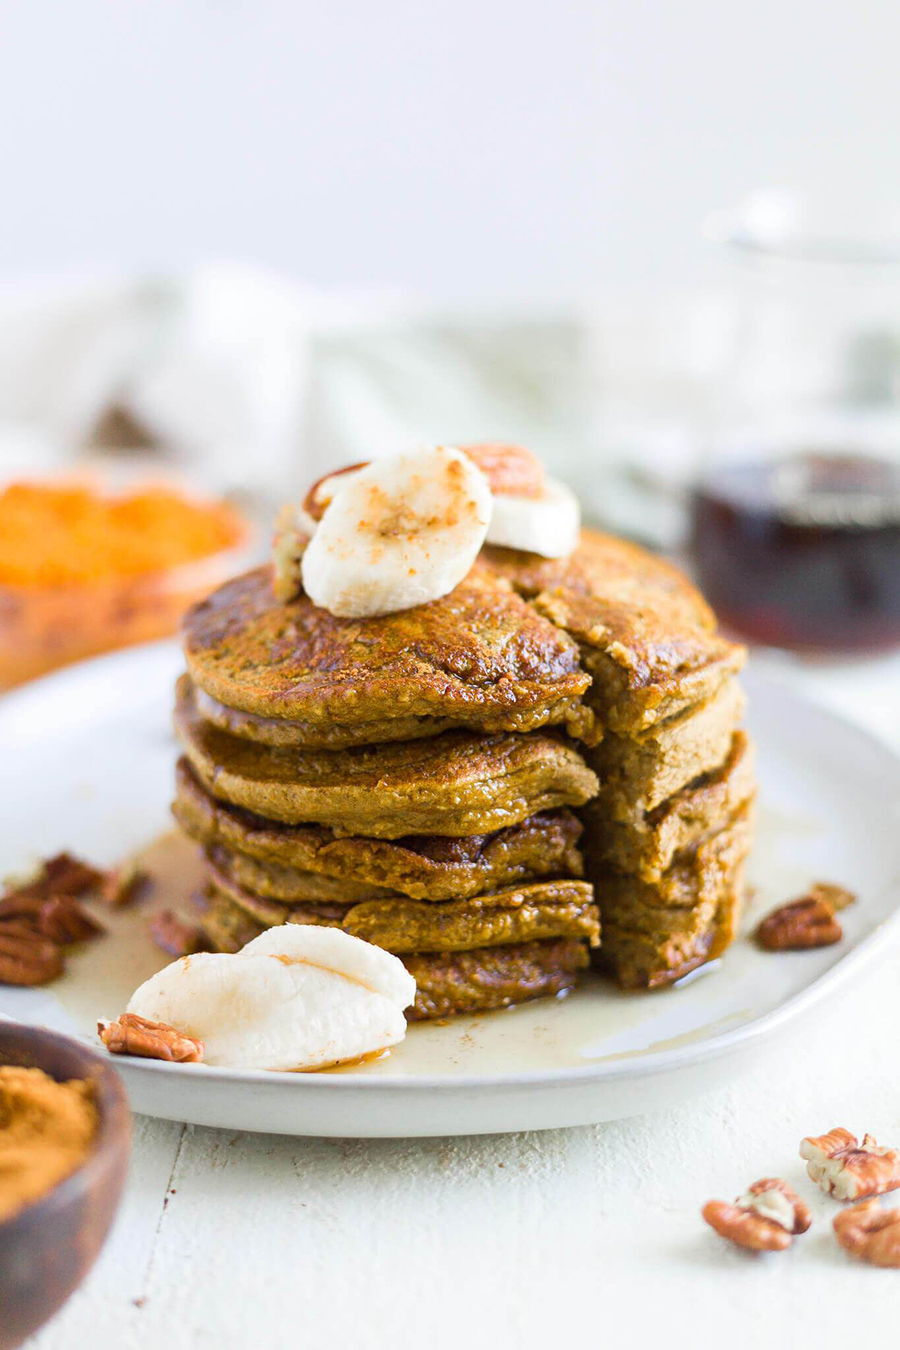 One healthy pumpkin recipe to try is pumpkin pancakes